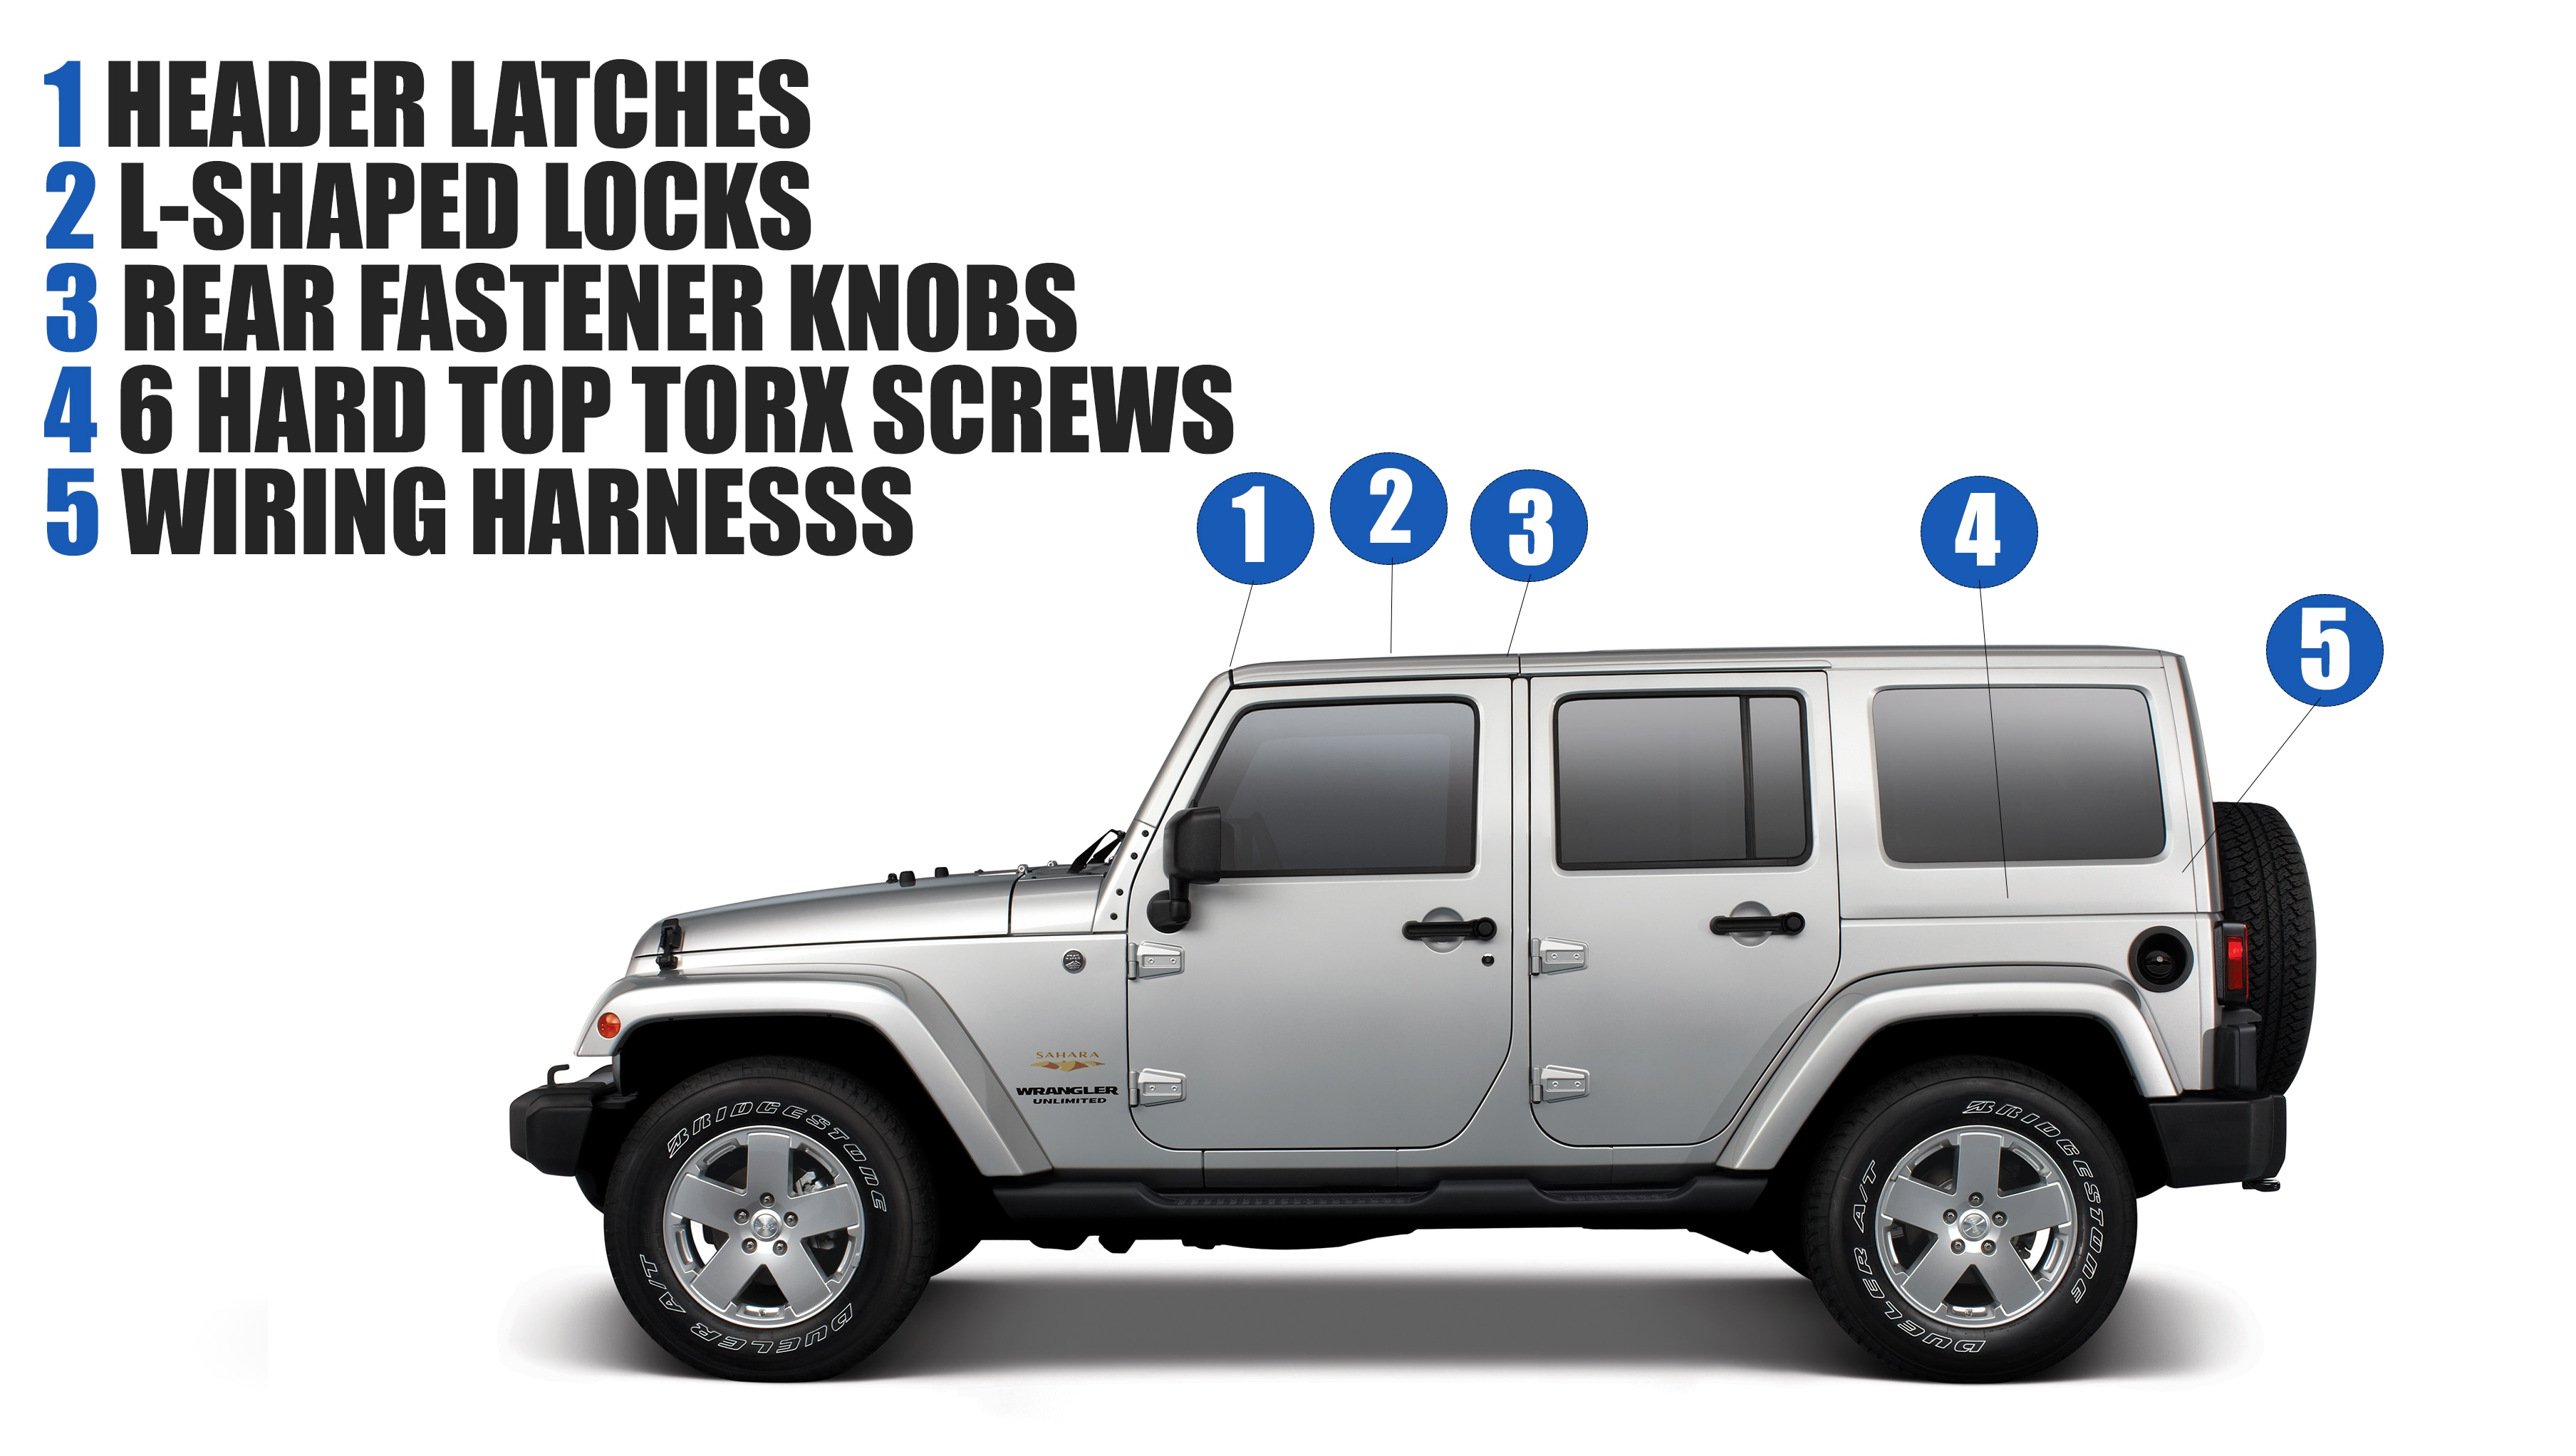 Remove The Hard Top On Your Wrangler Faqs Safford Of Warrenton Wiring Harness Clips Removal